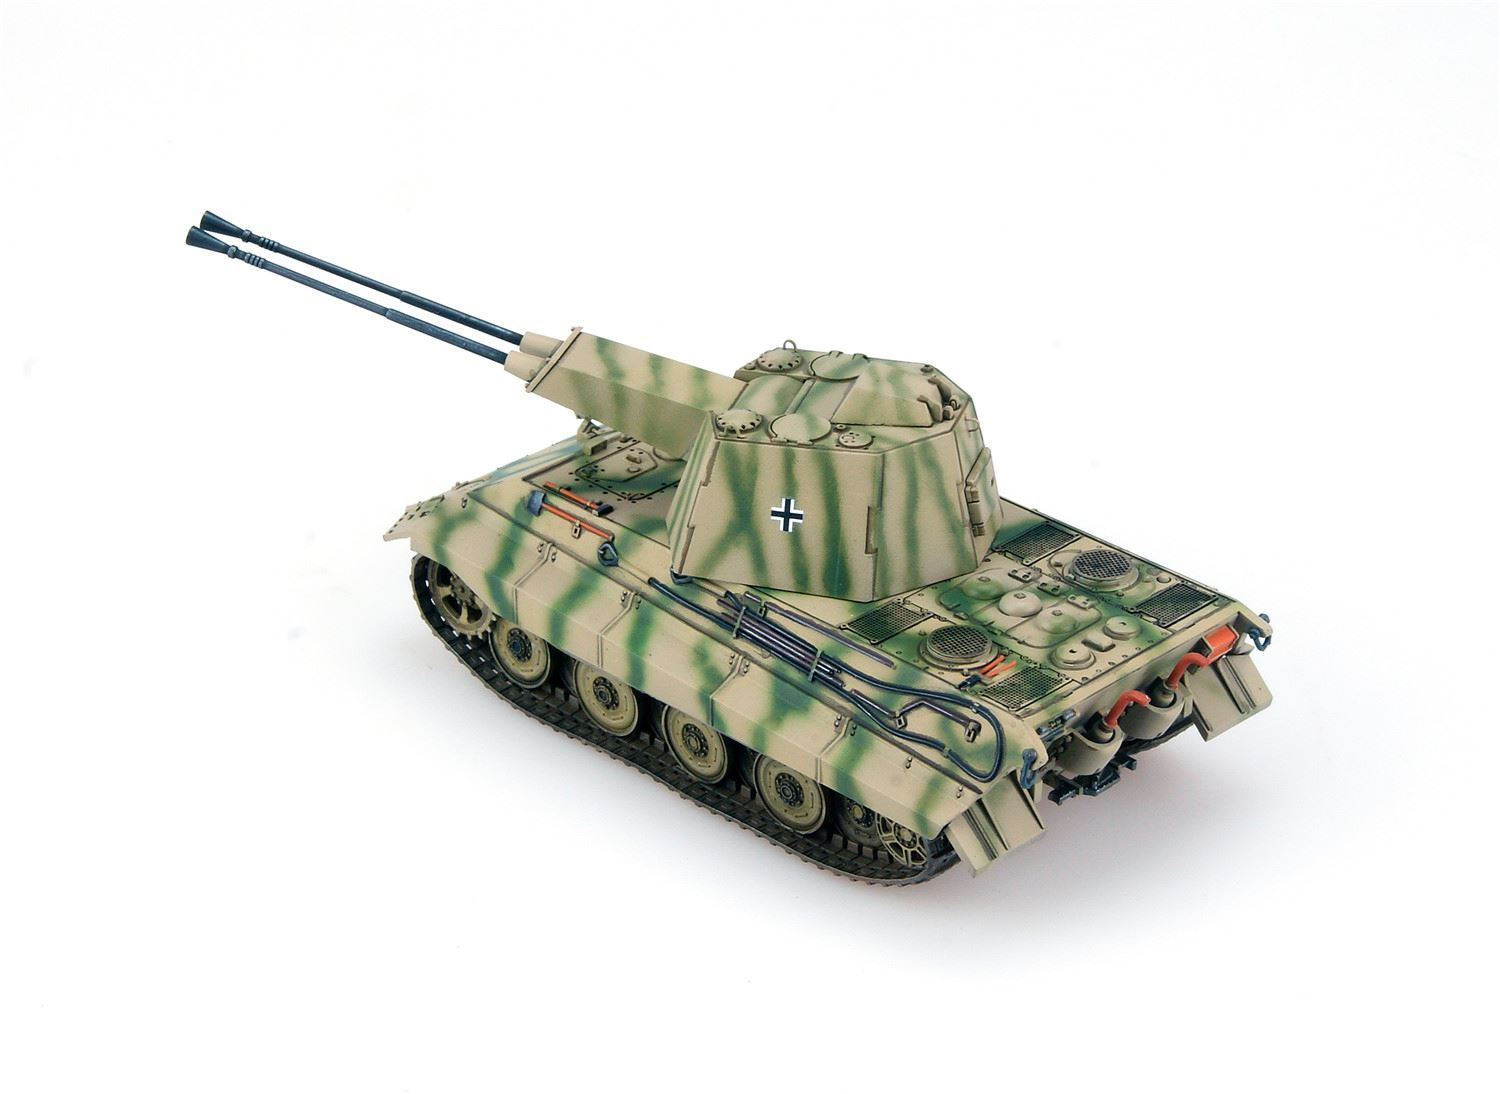 Germany WWII E-75 Flakpanzer with FLAK 55 Model Collect -UA72019